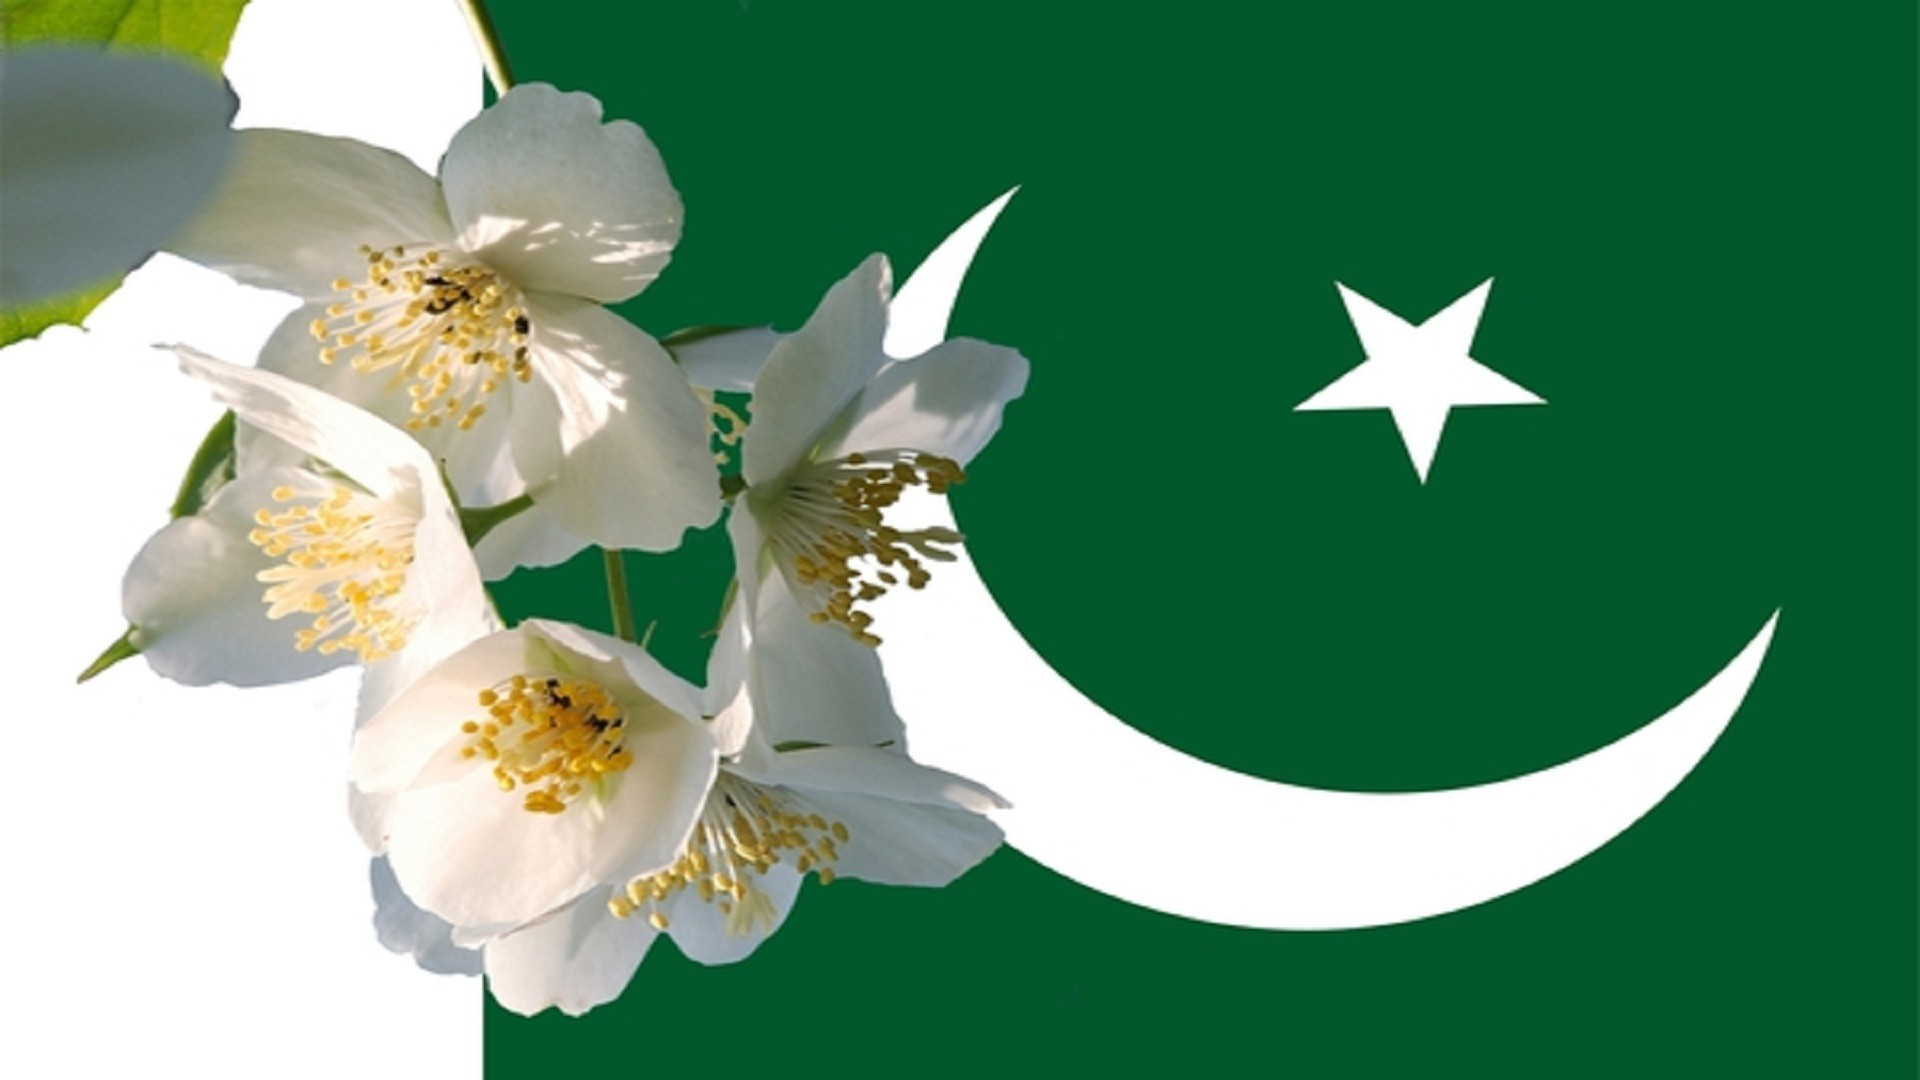 Wallpaper pakistan flag 2018 63 images for 3d wallpapers for home wall in pakistan